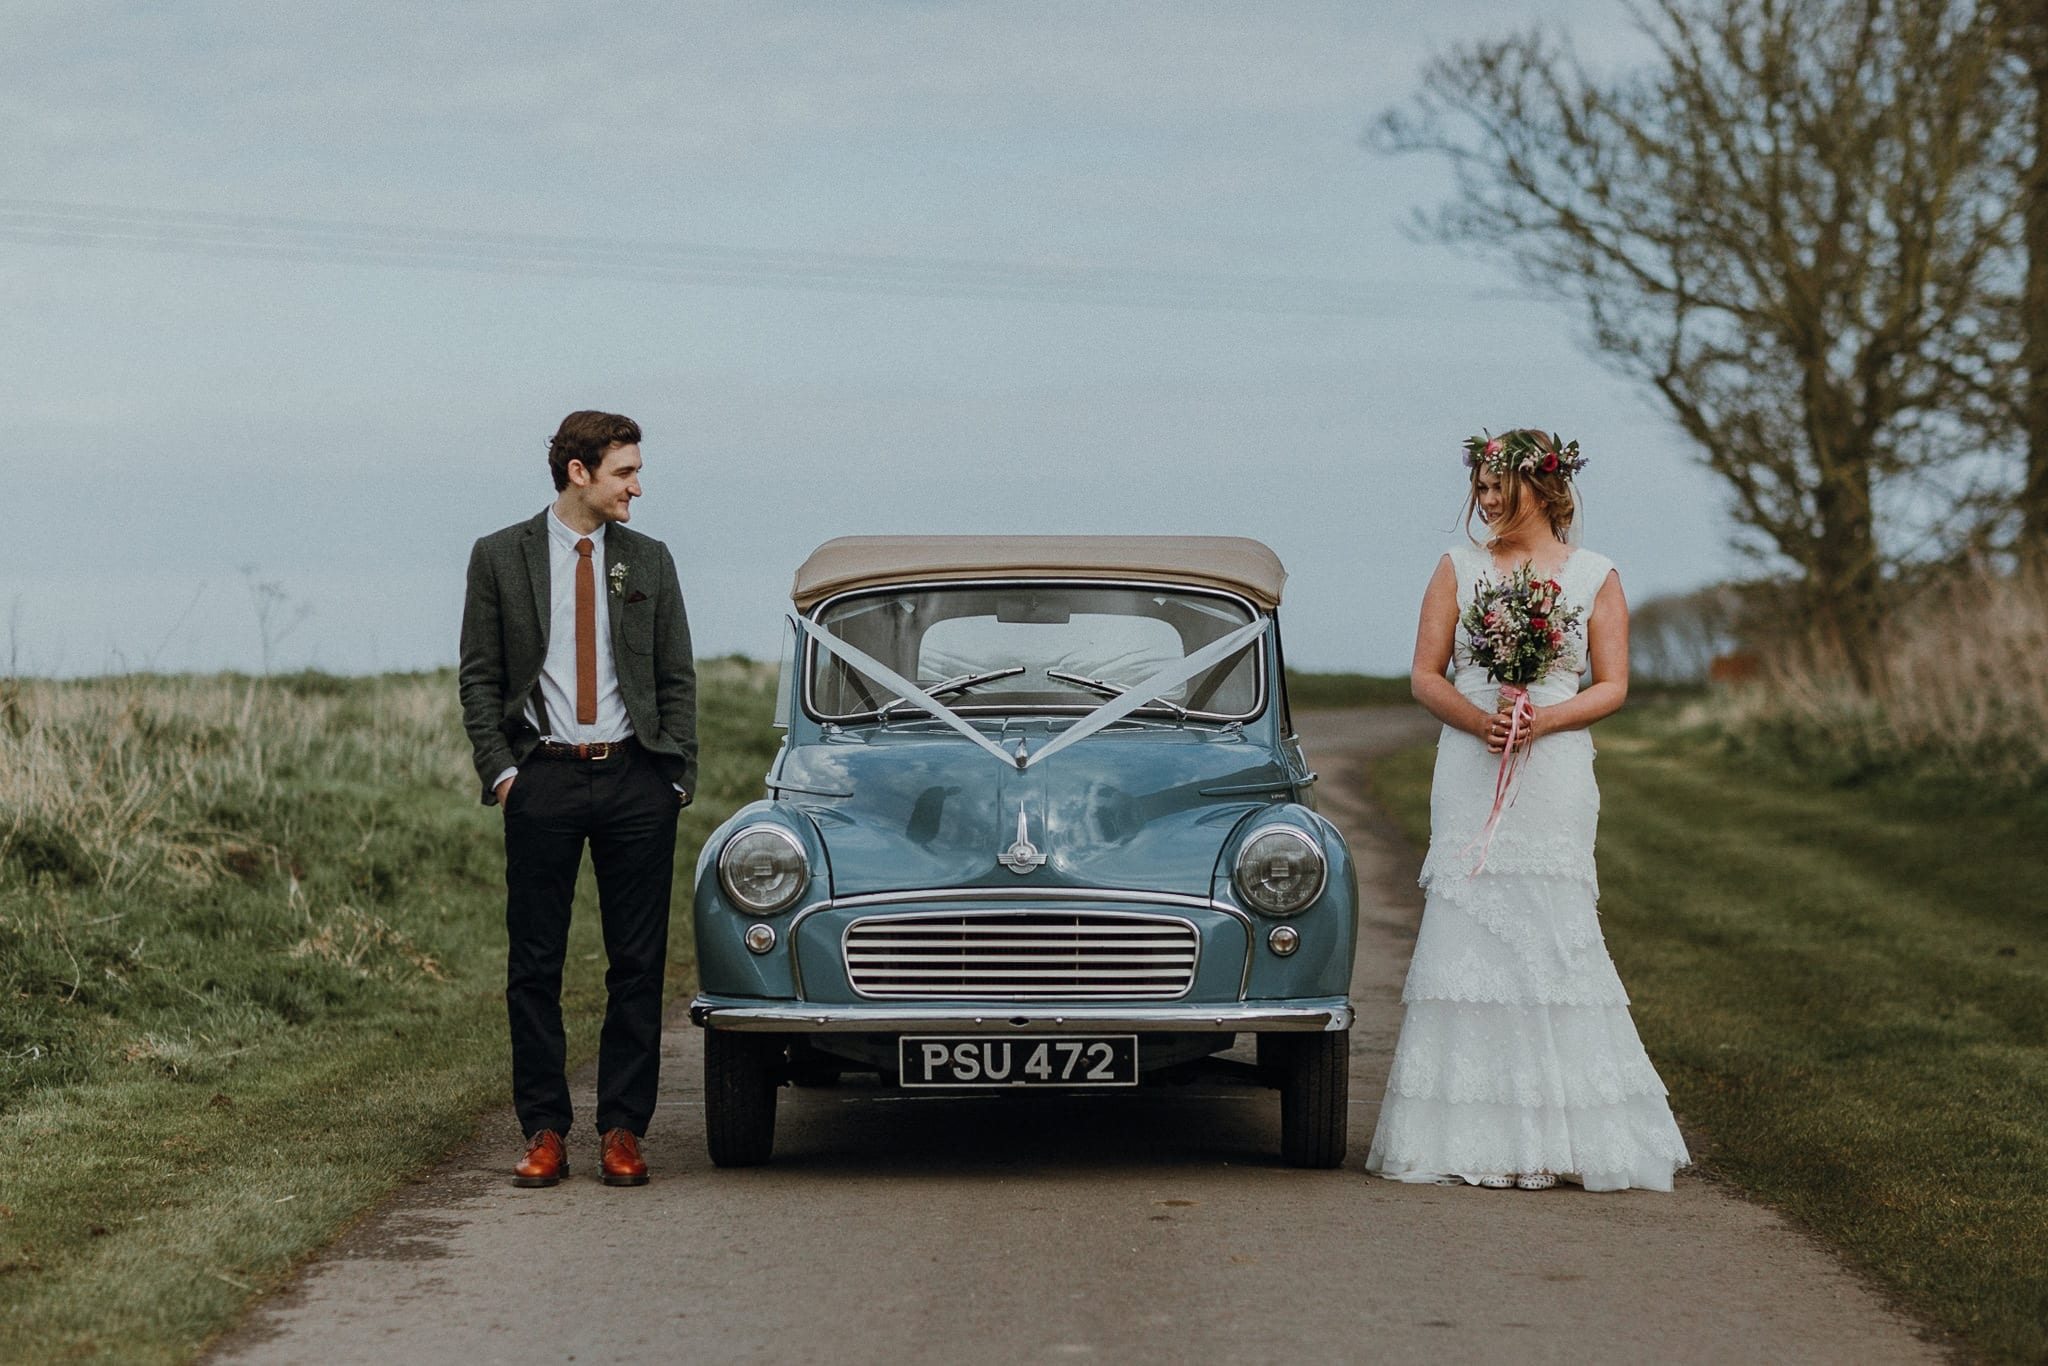 Bride and Groom with Retro Car in the Lane